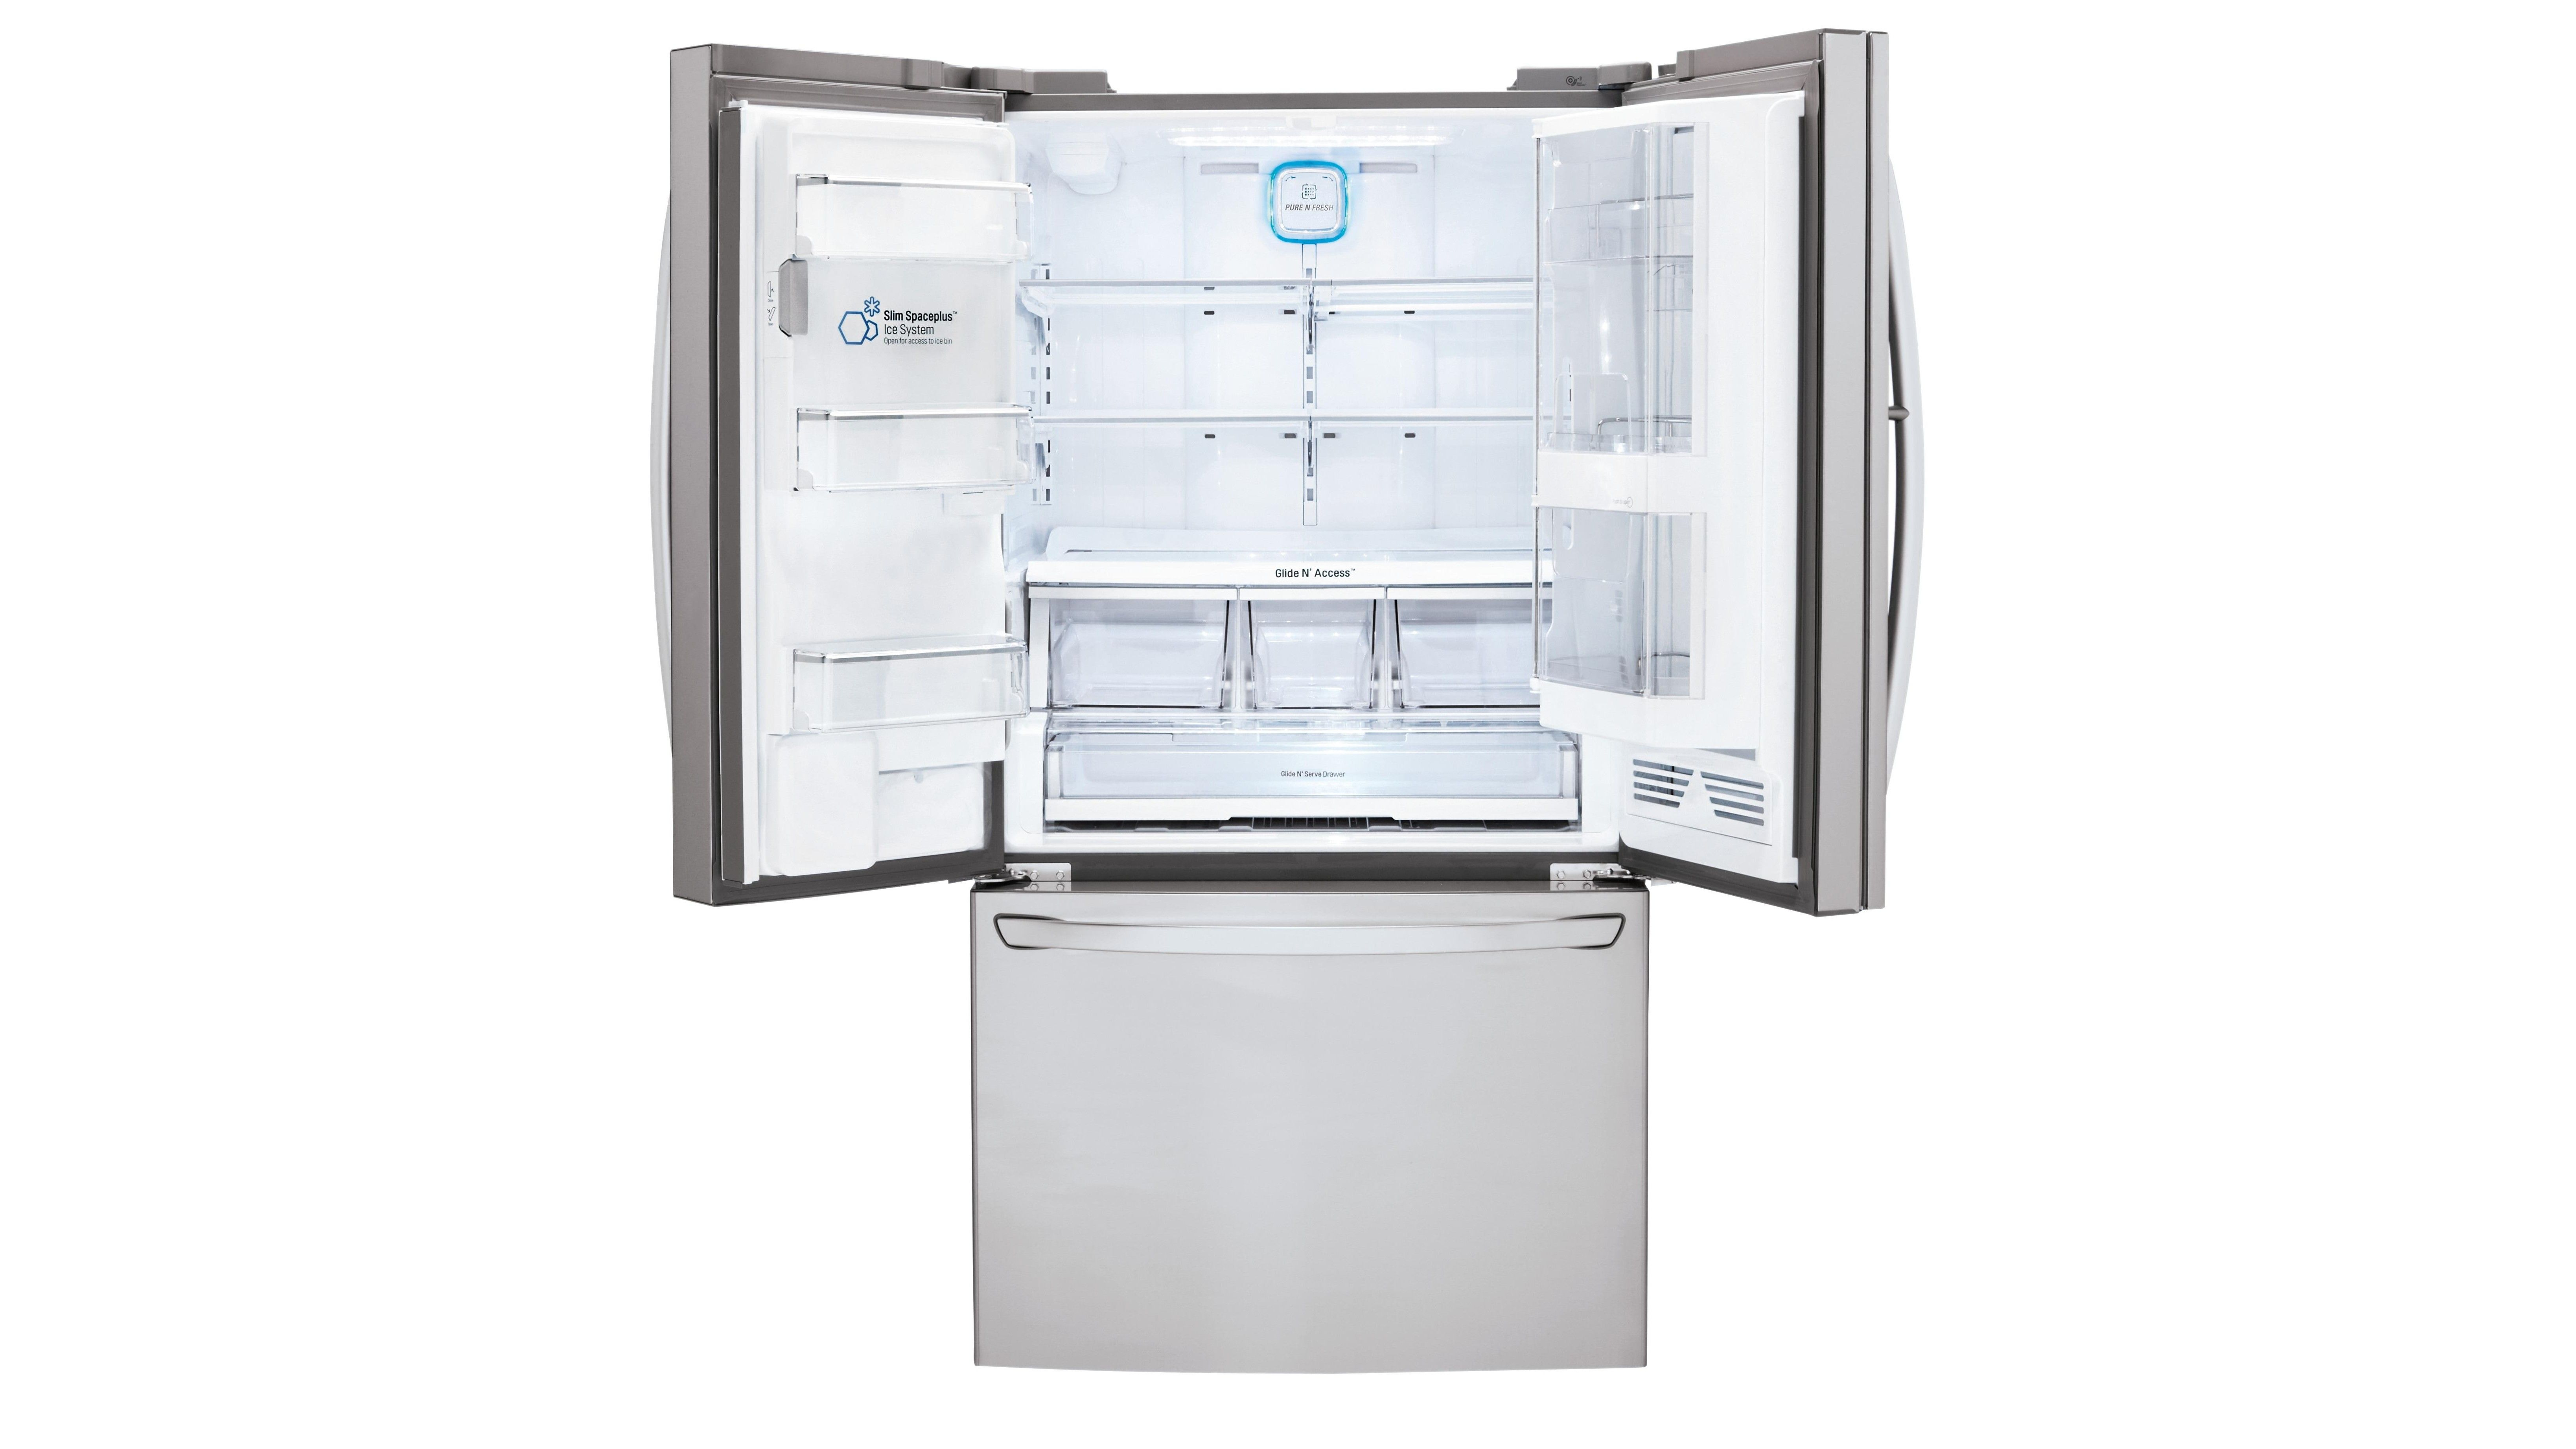 LG 730L French Door Fridge with Slim Ice Maker - Stainless